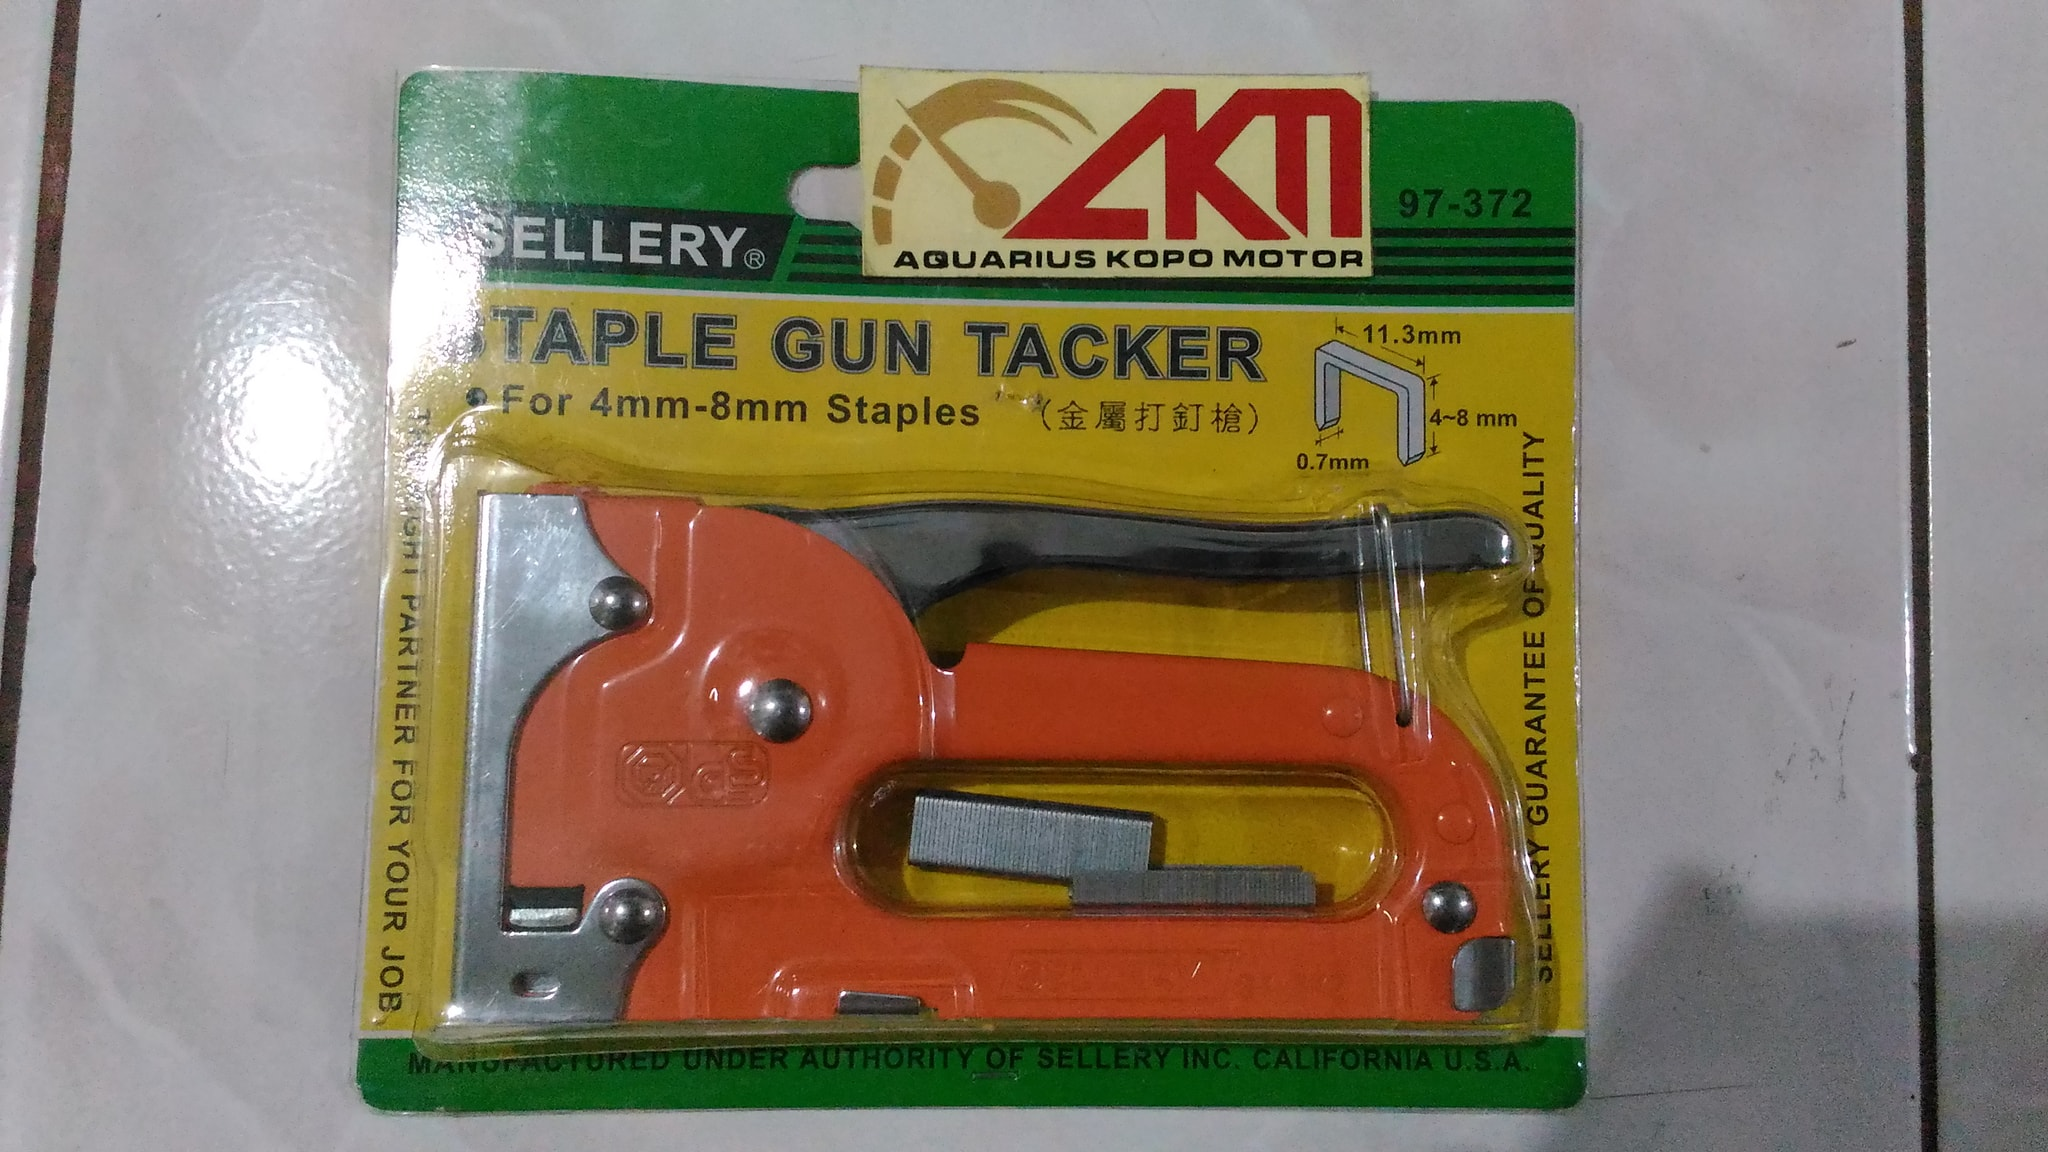 ... STAPLE GUN. Source · 758207_6948d2a6-486f-4004-9c51-3736c5493765.jpg